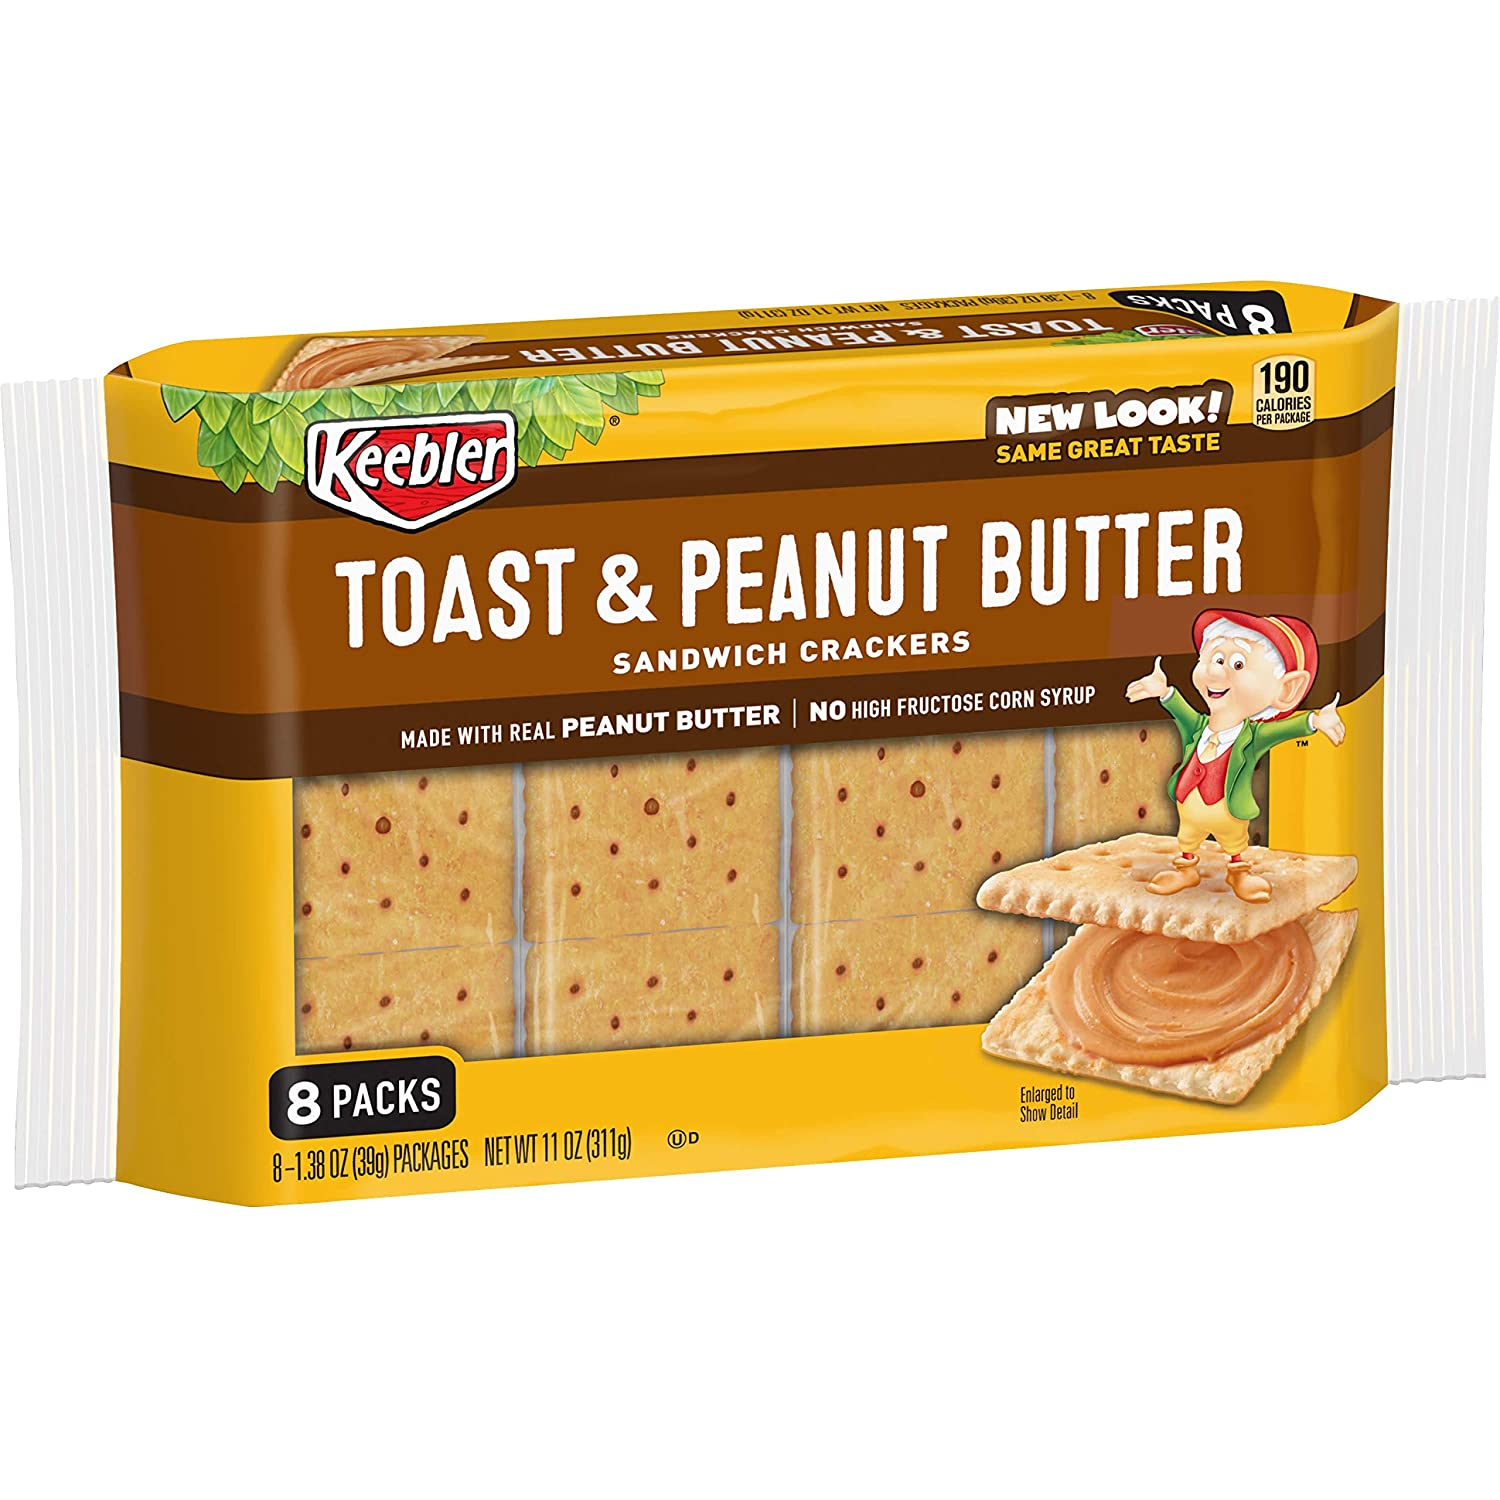 Toast and Peanut Butter Sandwich Crackers